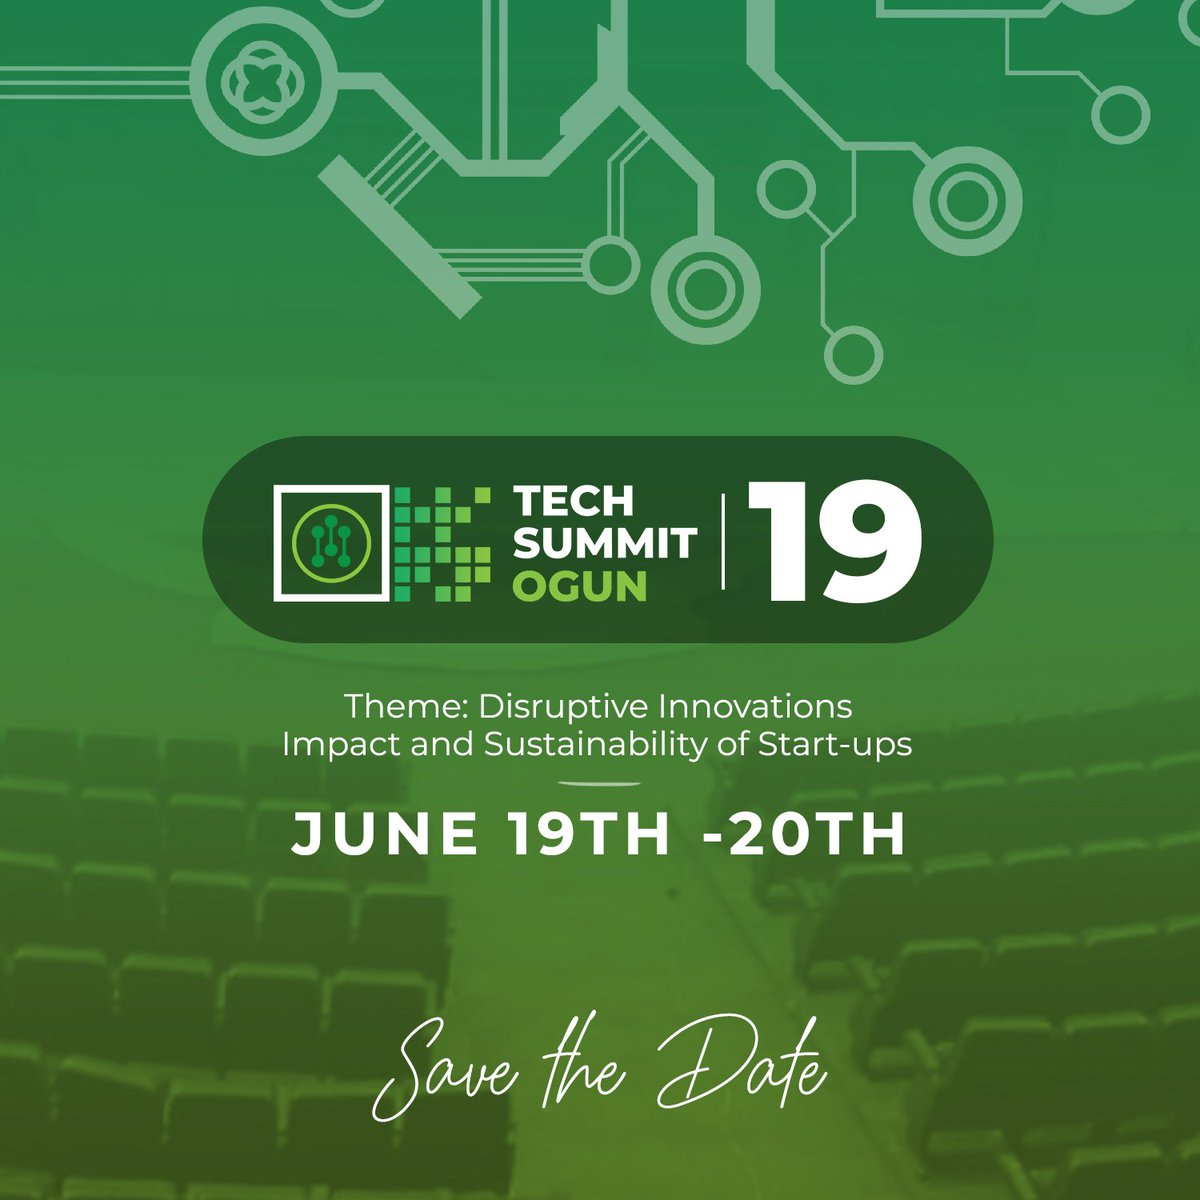 Tech Summit Ogun is the largest event for tech startups. You don't want to miss this #TechSummitOgun19<br>http://pic.twitter.com/N5qxq5QITN